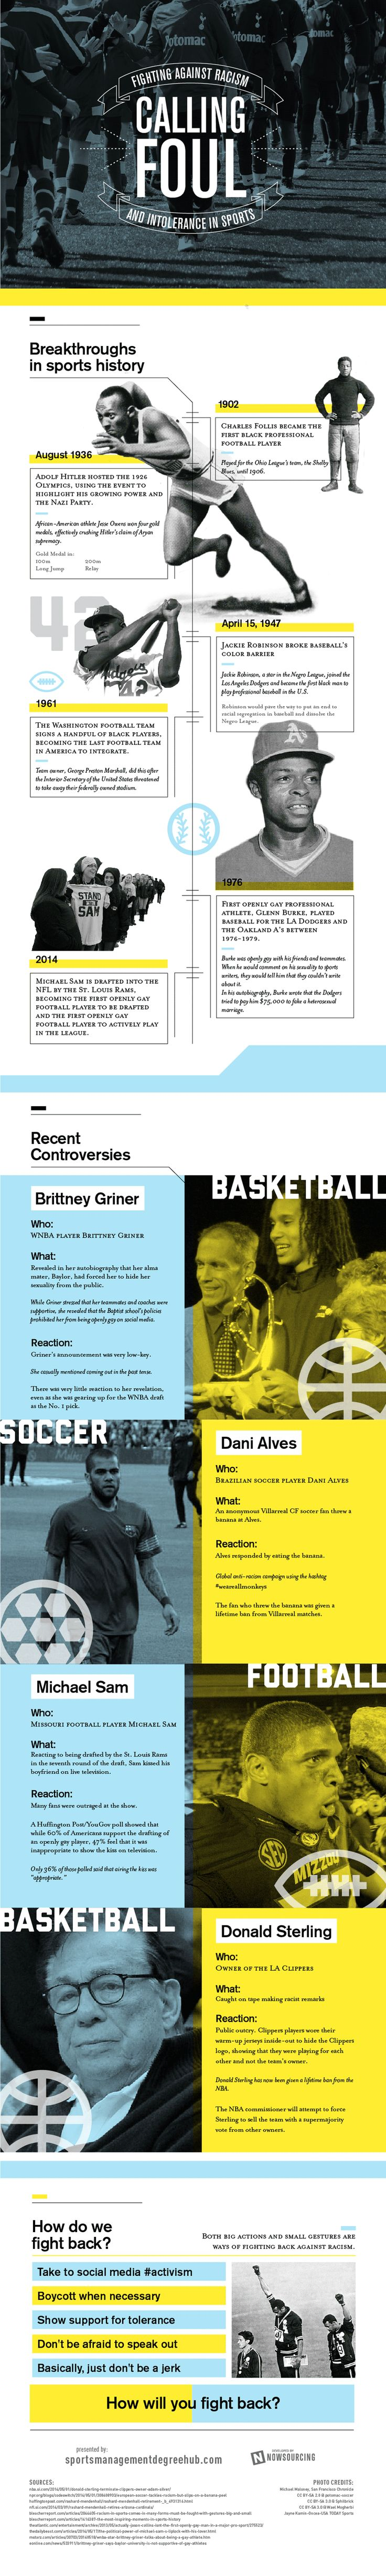 Racism in Sports [Infographic]